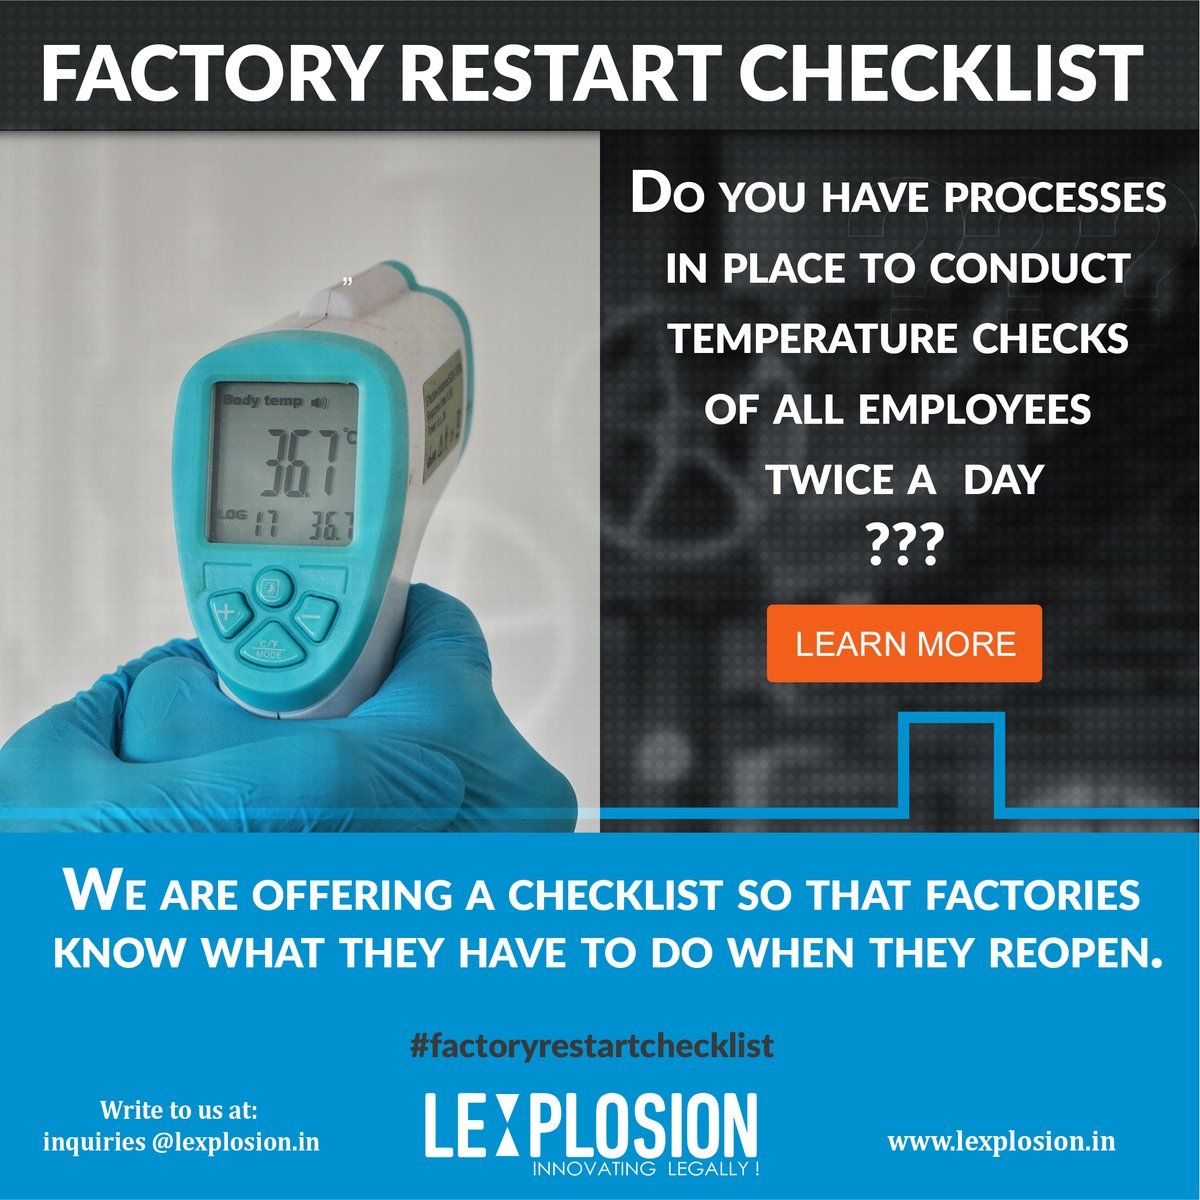 Do you have processes in place to conduct temperature checks of all employees twice a  day? Checkout our #factoryrestartchecklist - https://lexplosion.in/regulatory-statutory-update/factory-restart-checklist/ … #unlockindia #unlock1 #covid19india #covid19impact #compliancechecklist #compliance #covid19crisis #lockdown2020pic.twitter.com/dRg8fujNG2